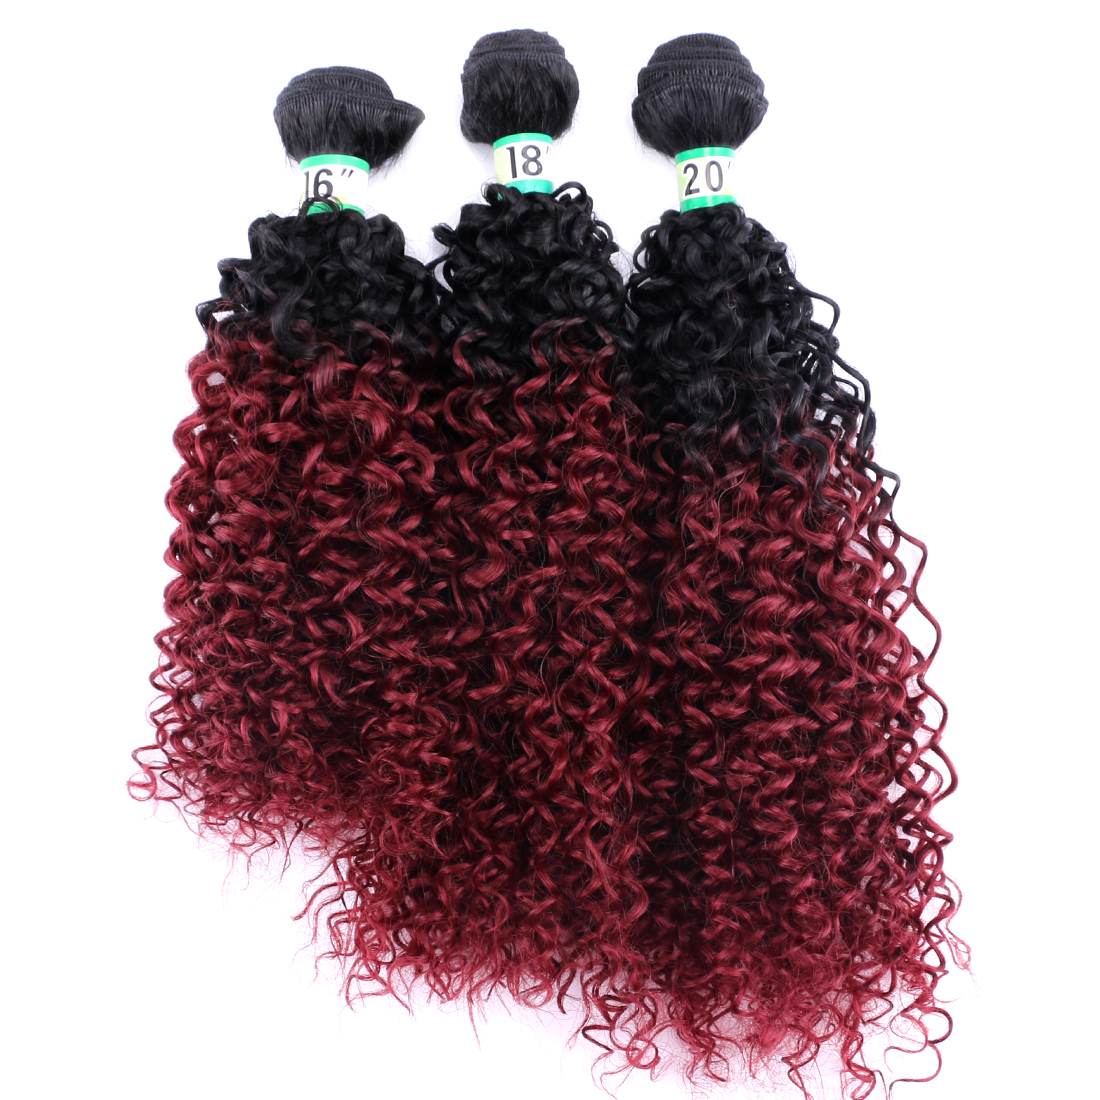 70 Gram One Piece Afro Kinky Curly Hair Bundles Brown to Golden Color High Temperature Chemical Fiber Hair Extensions for Women